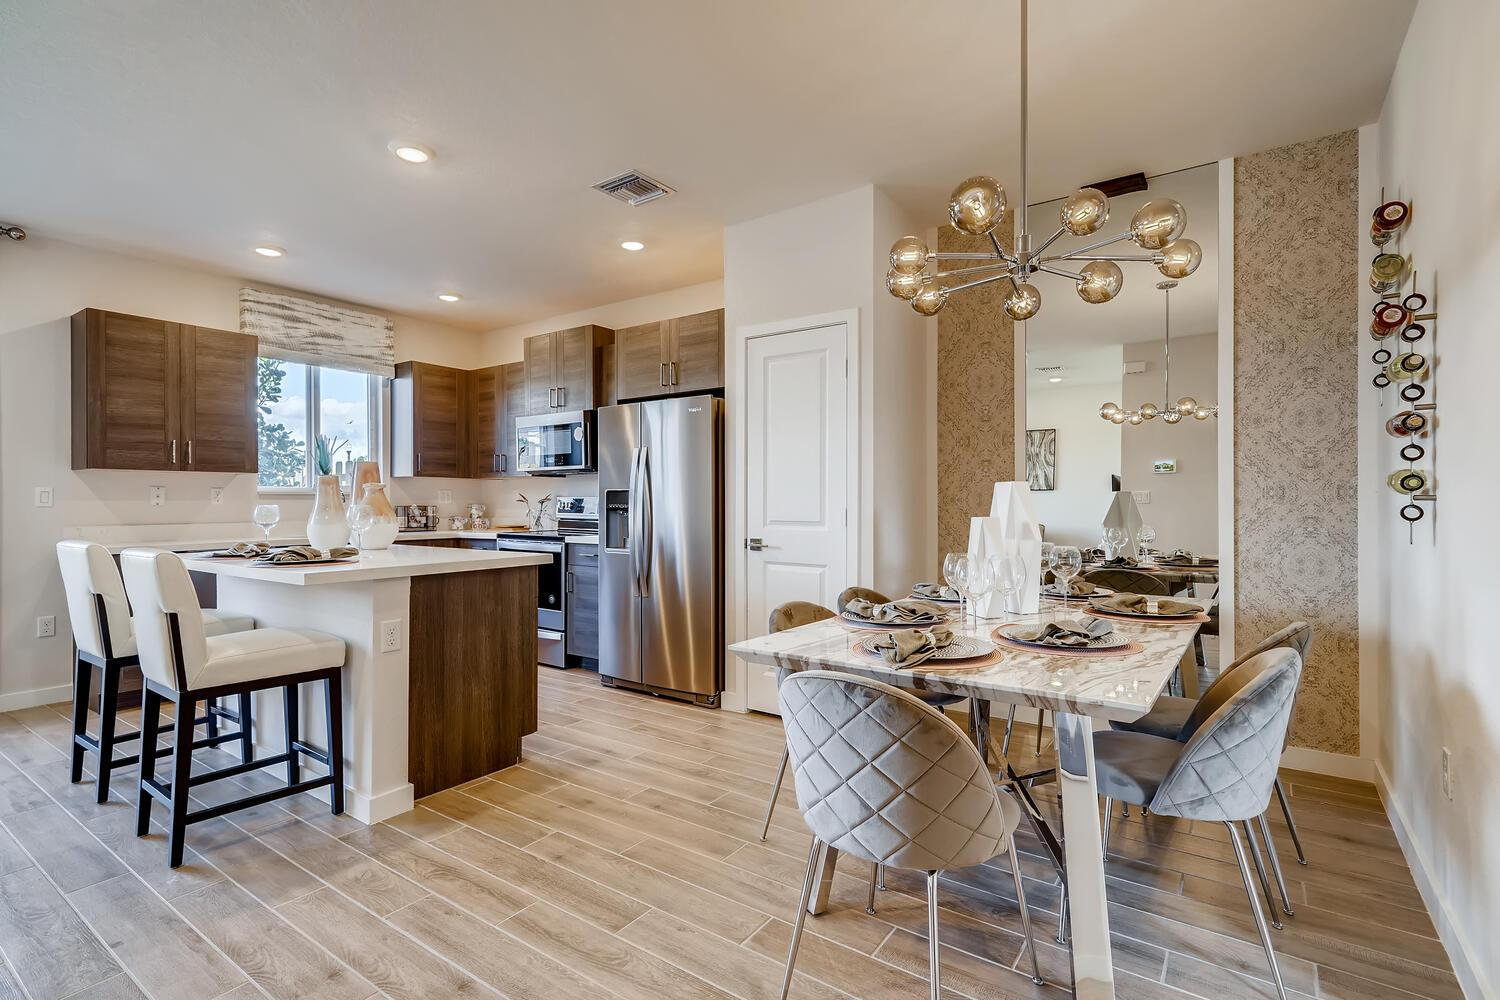 Kitchen featured in the Napa By D.R. Horton in Miami-Dade County, FL